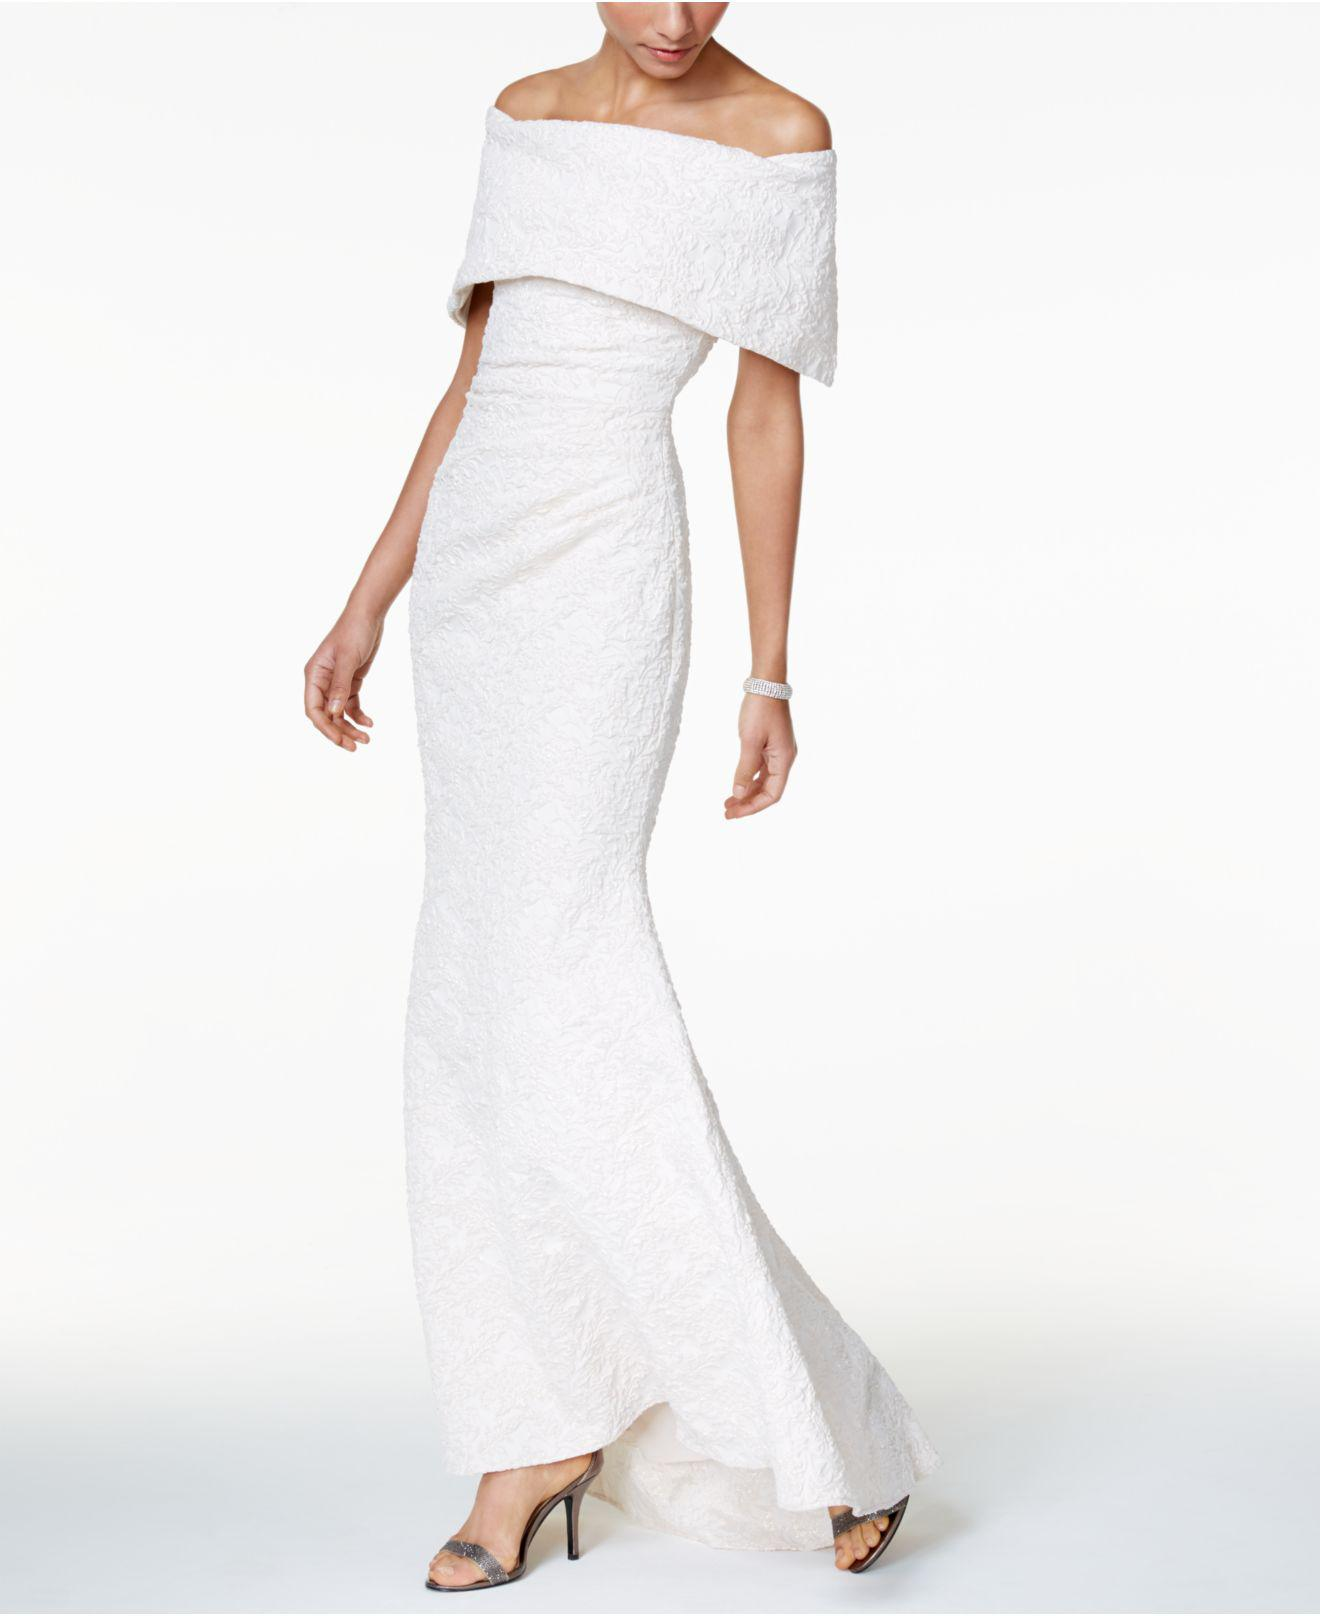 37abe60d Betsy & Adam Off-the-shoulder Jacquard Mermaid Gown in White - Lyst